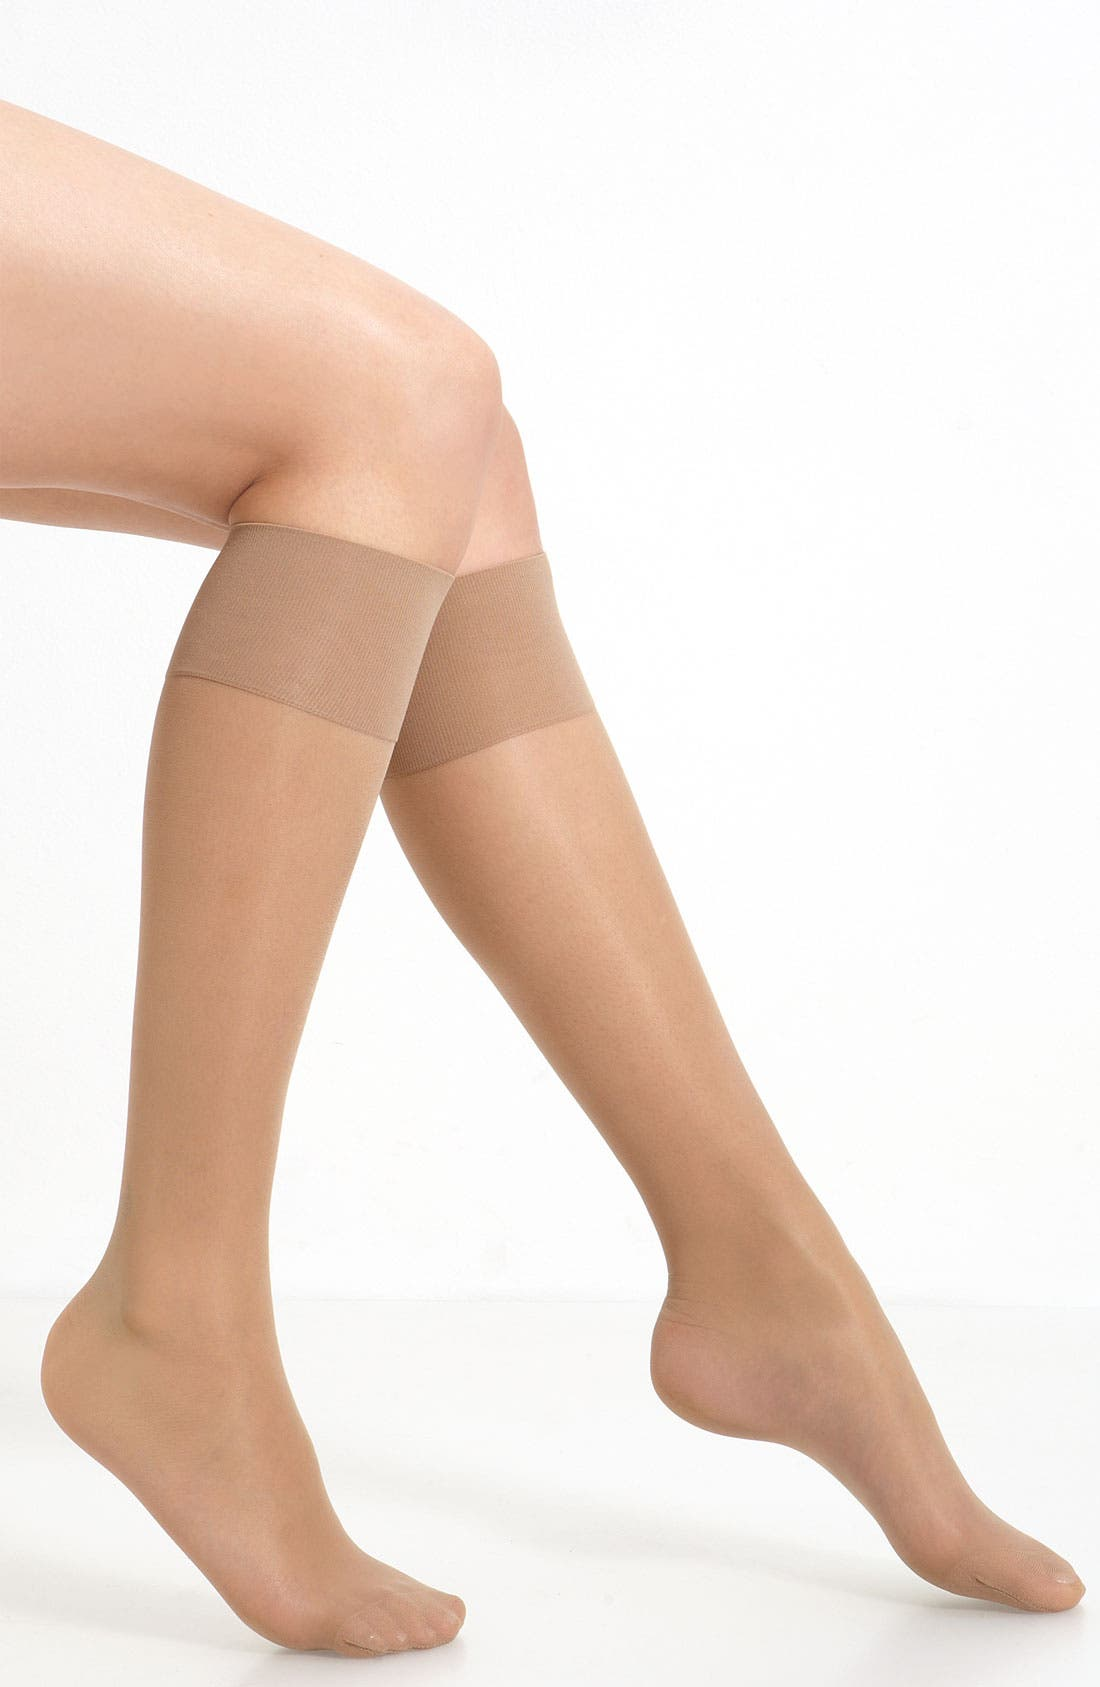 Alternate Image 1 Selected - Oroblu 'Mi-Bas Repos 70' Sheer Support Knee Highs